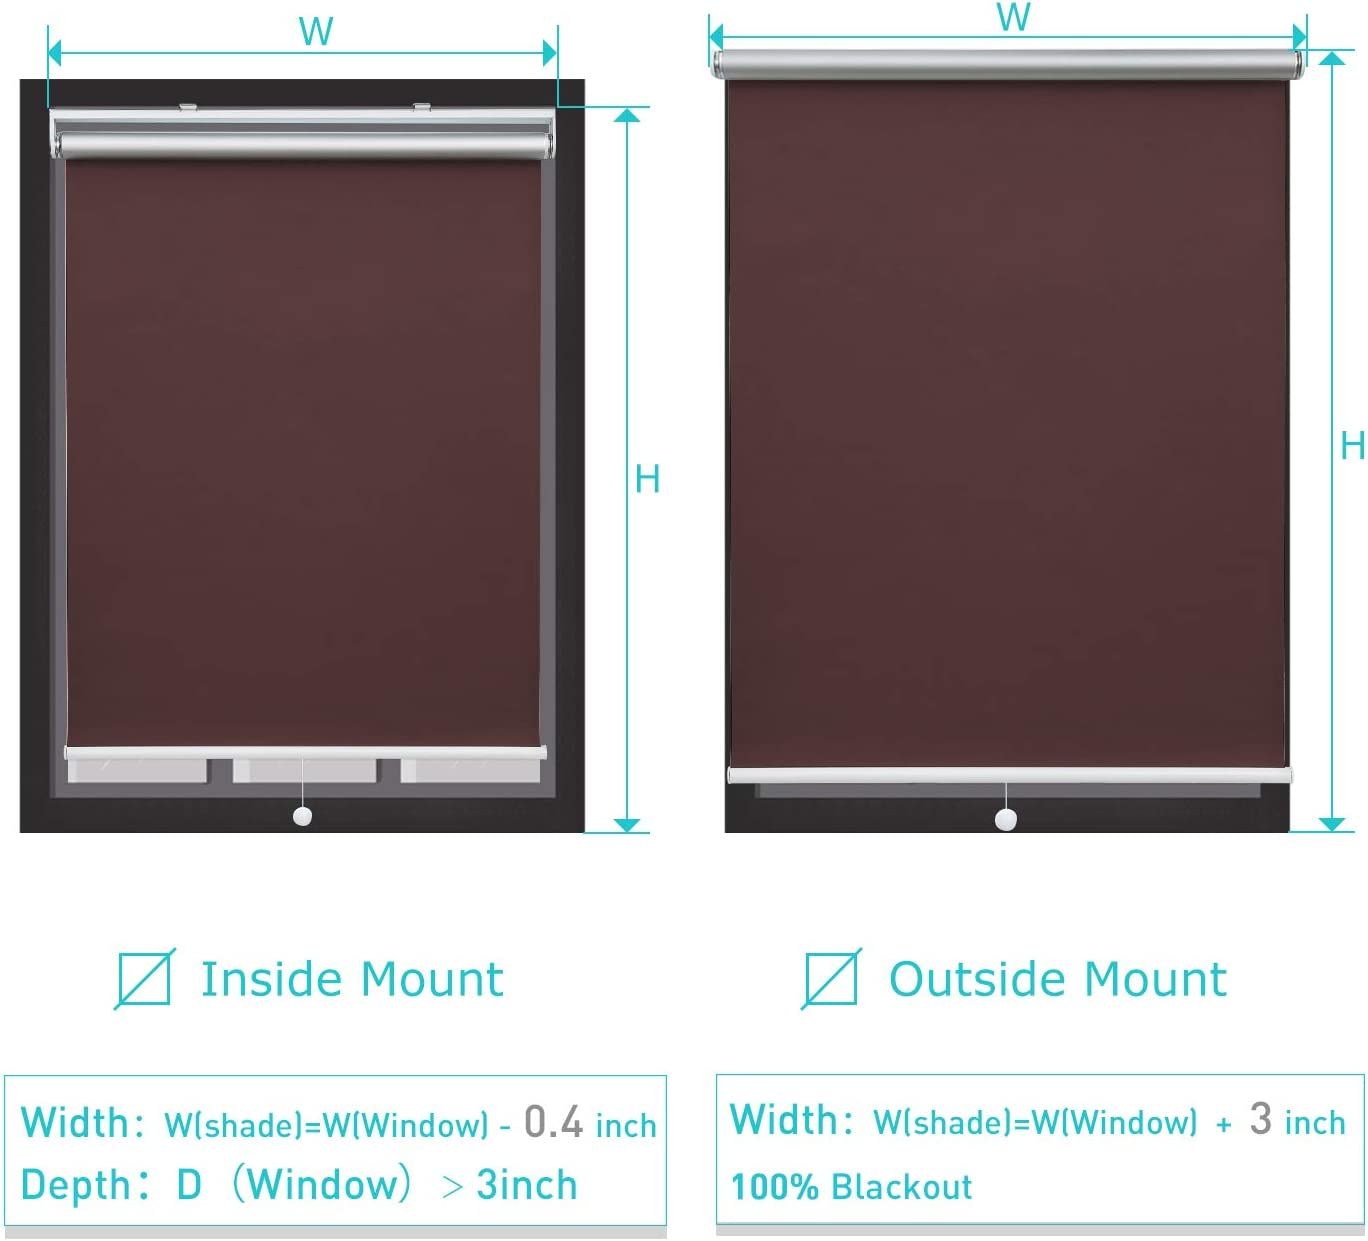 UV Protection Thermal Insulated Window Blinds and Shades for Home and Office Black Donutse 100/% Blackout Fabric Shades Cordless Roller Shades for Windows 48 W x 72 H